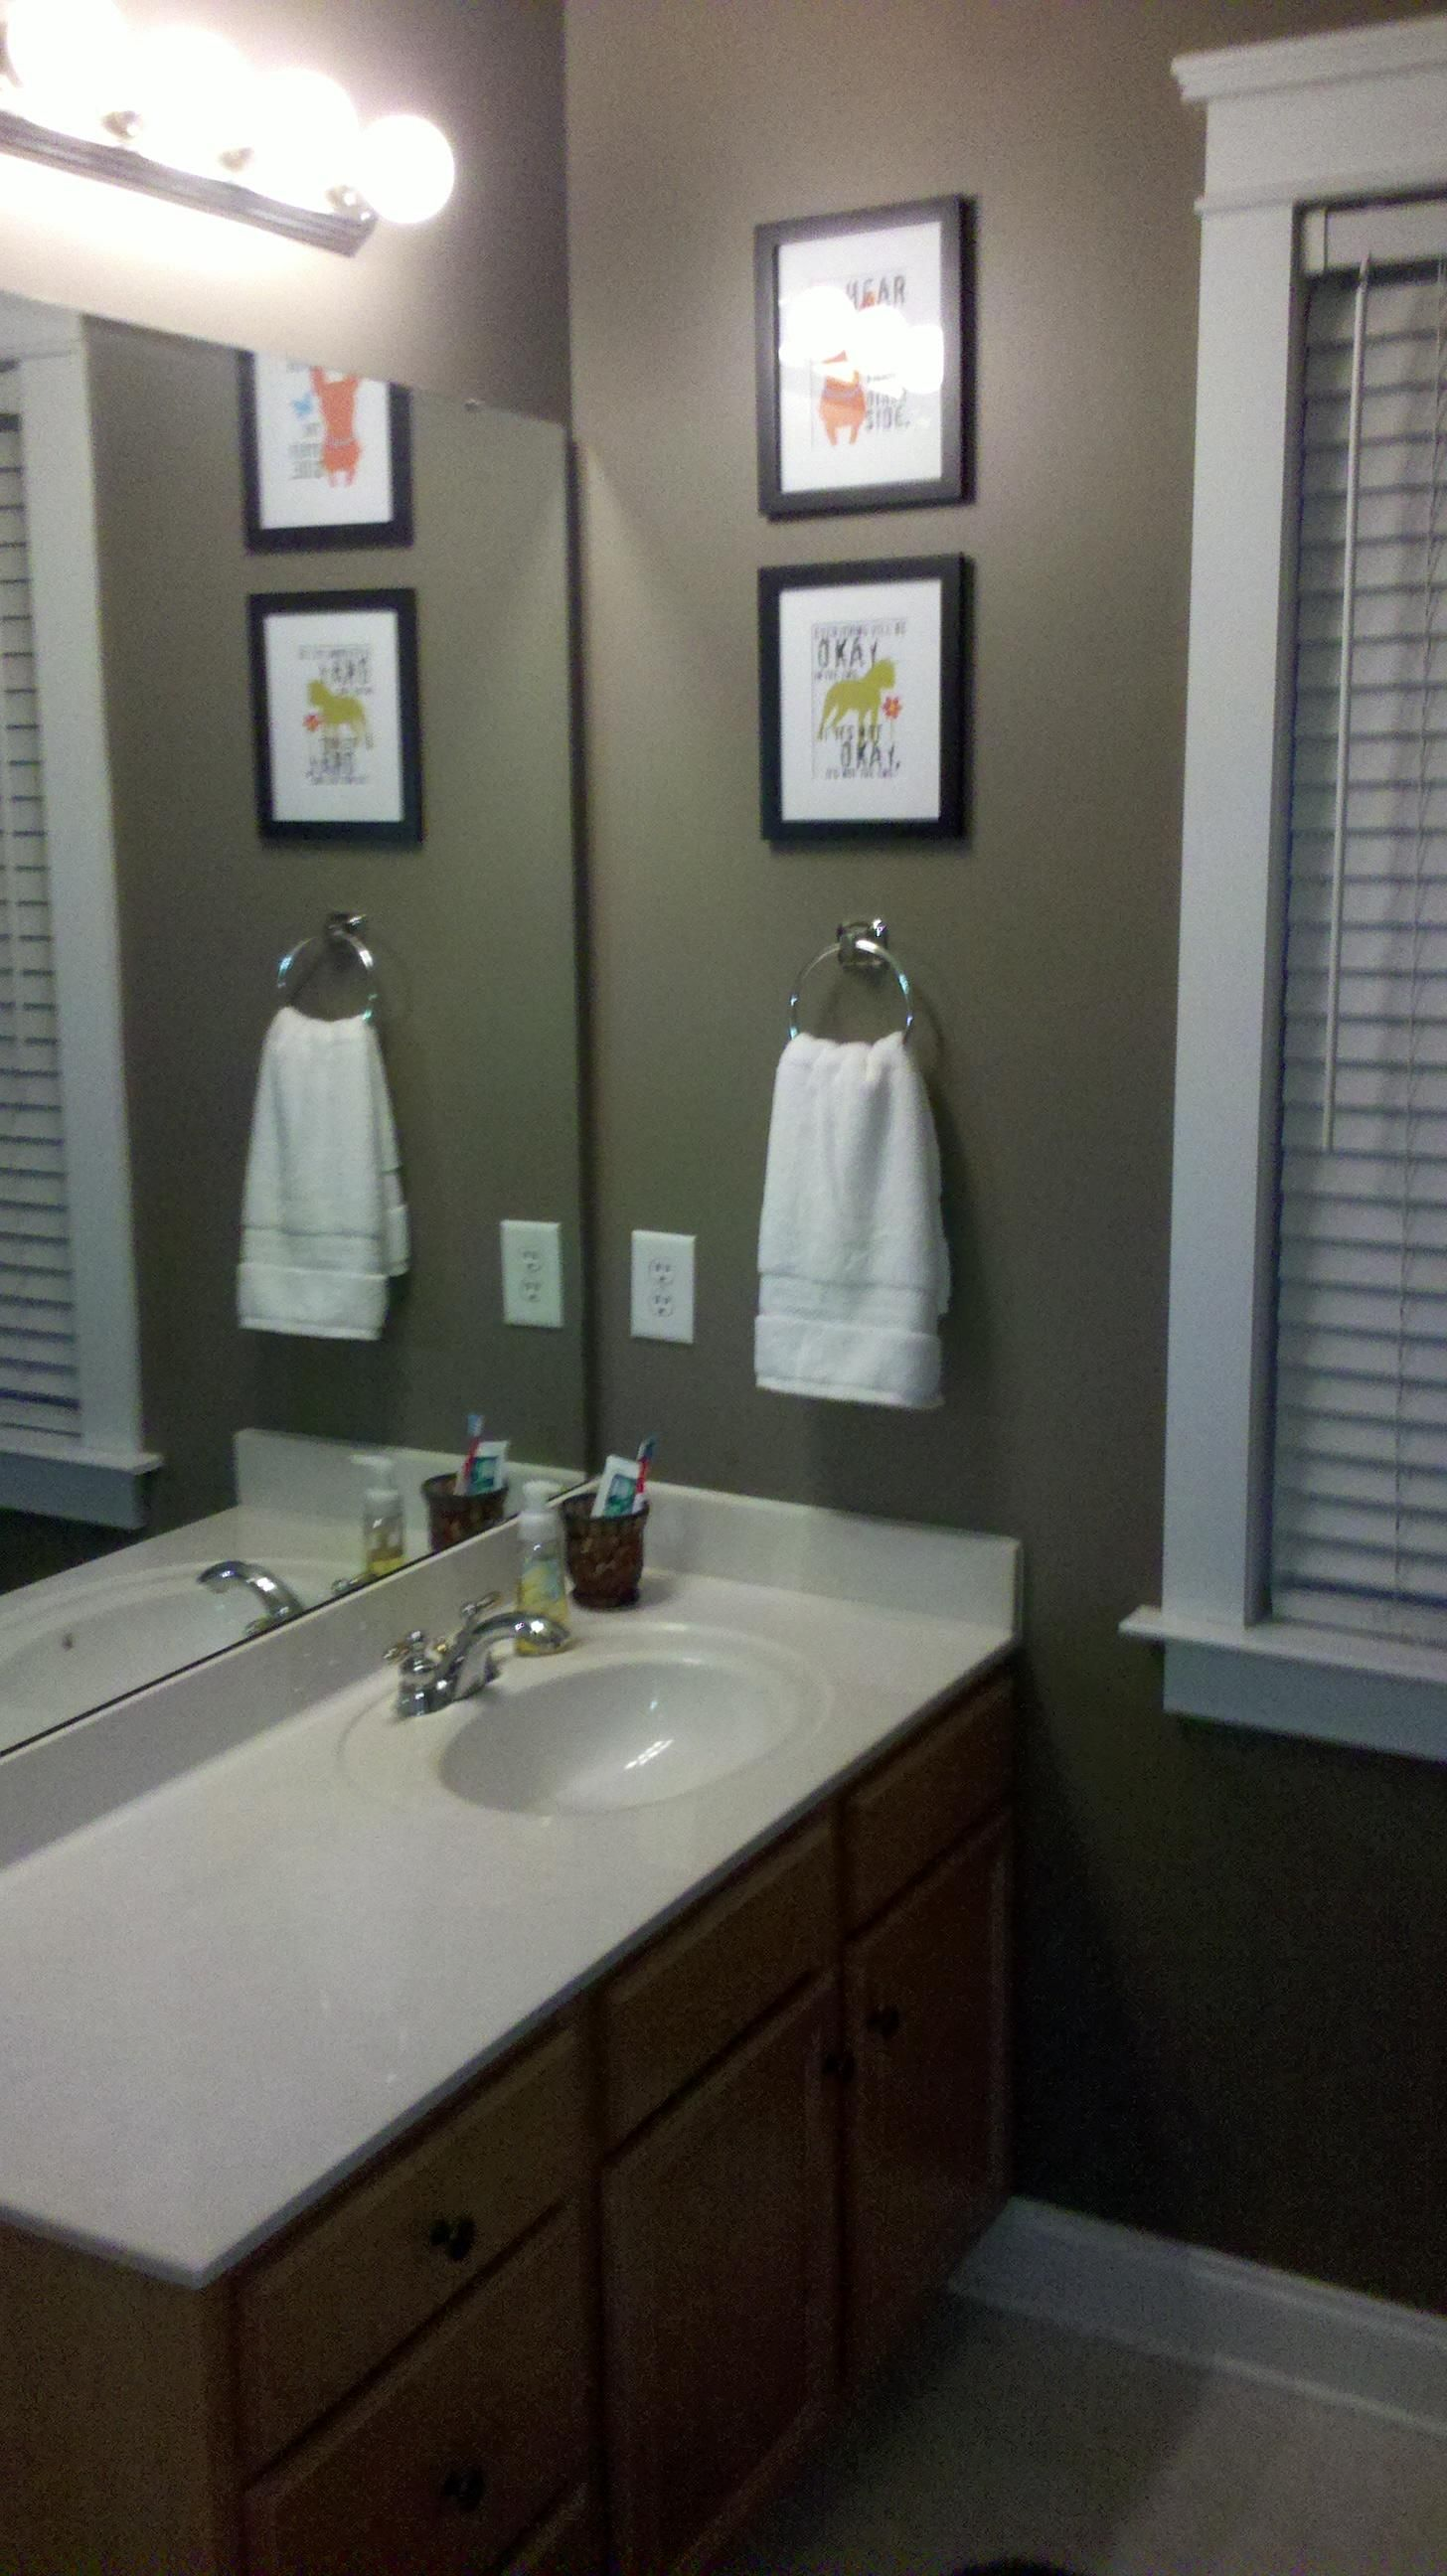 Sherwin williams paint warm stone the color is very nice - How to prepare bathroom walls for painting ...